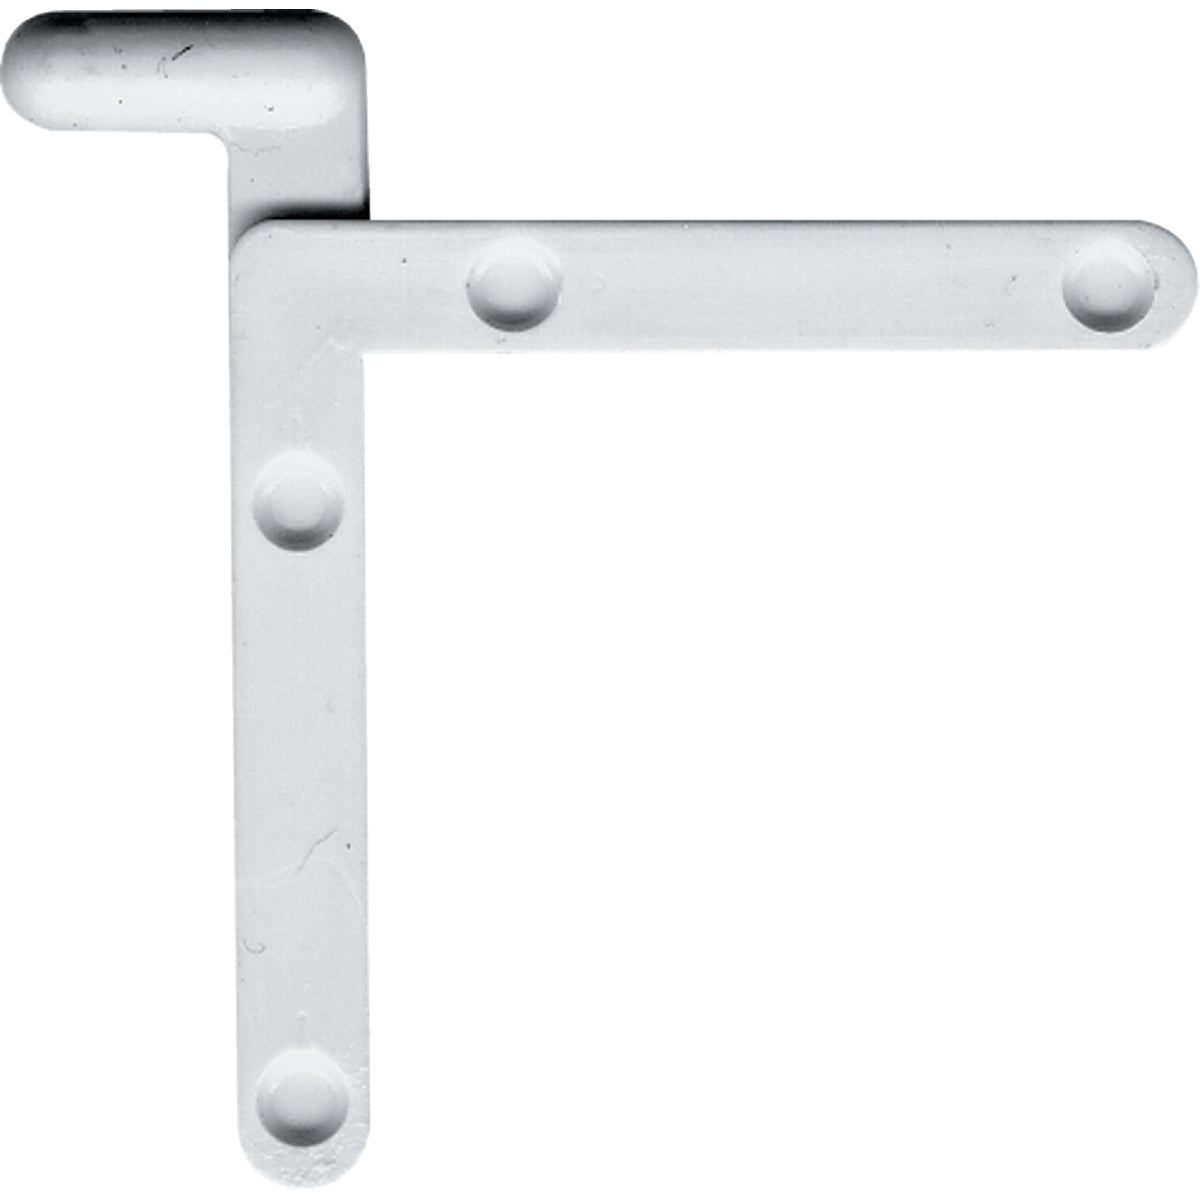 5/32X5/32 NYLON TILT KEY - PL15176 by Prime Line Products